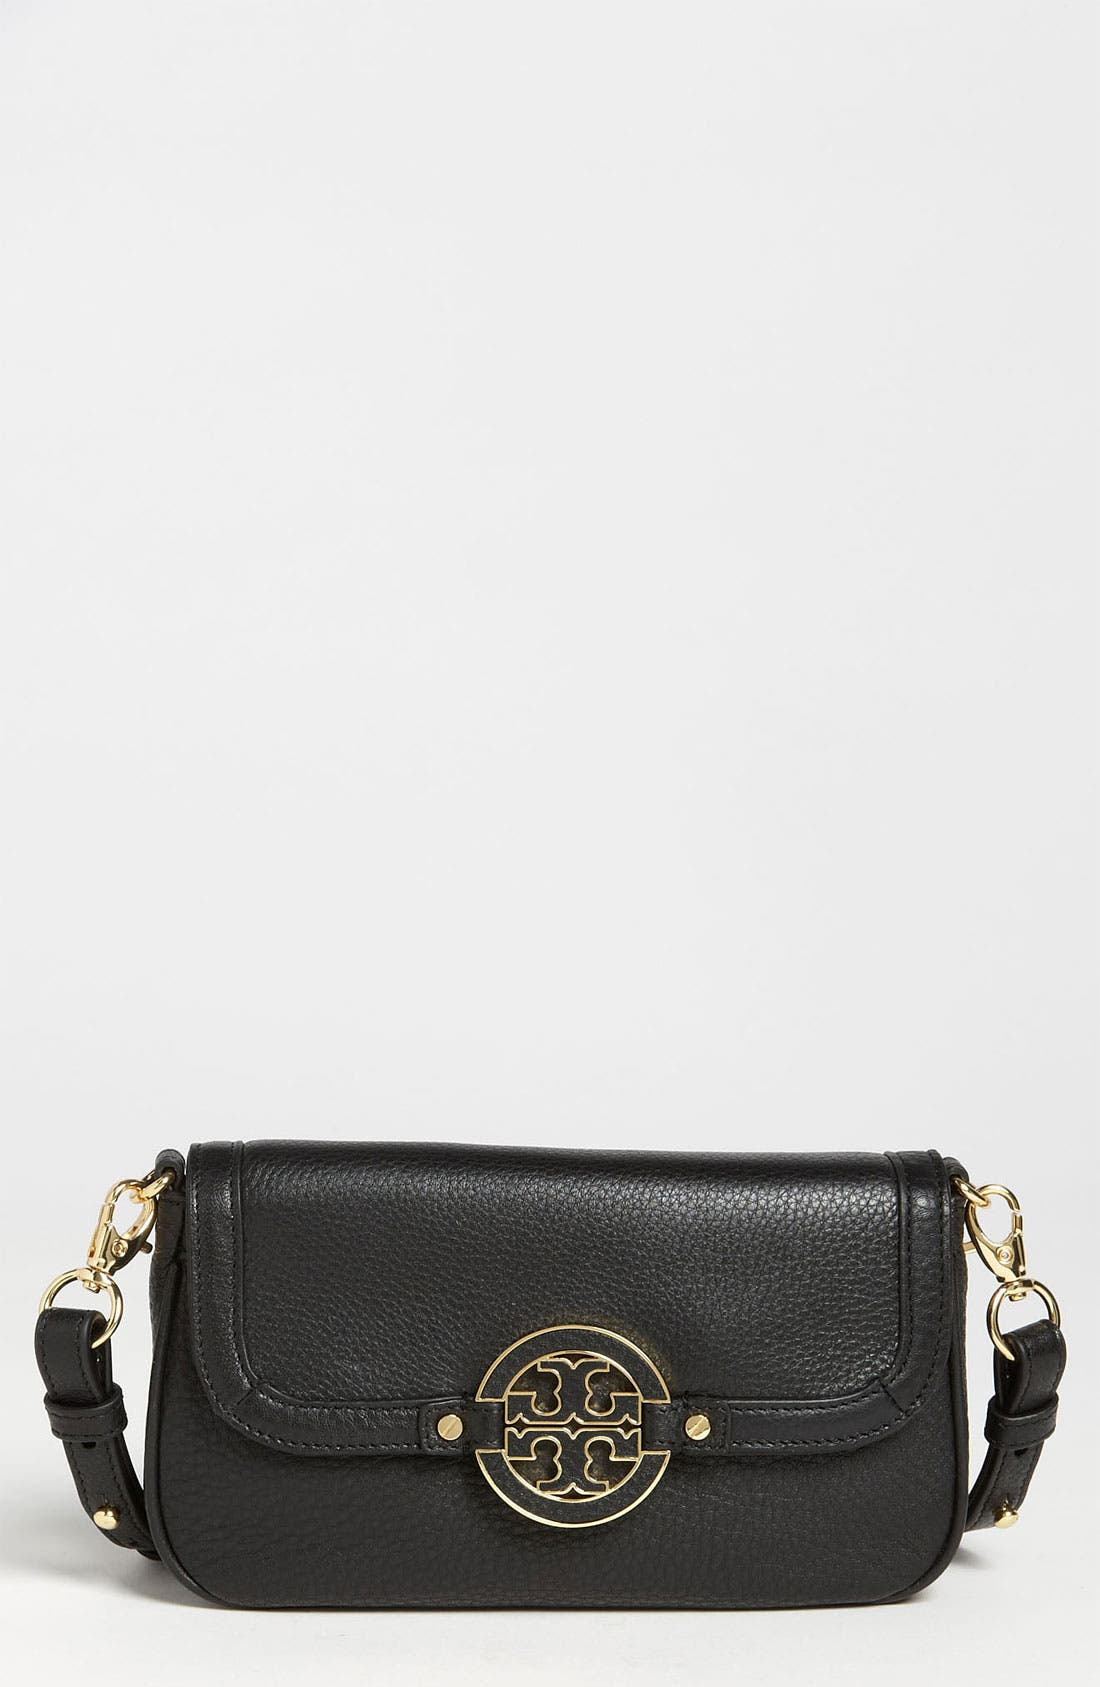 Main Image - Tory Burch 'Amanda - Mini' Crossbody Bag